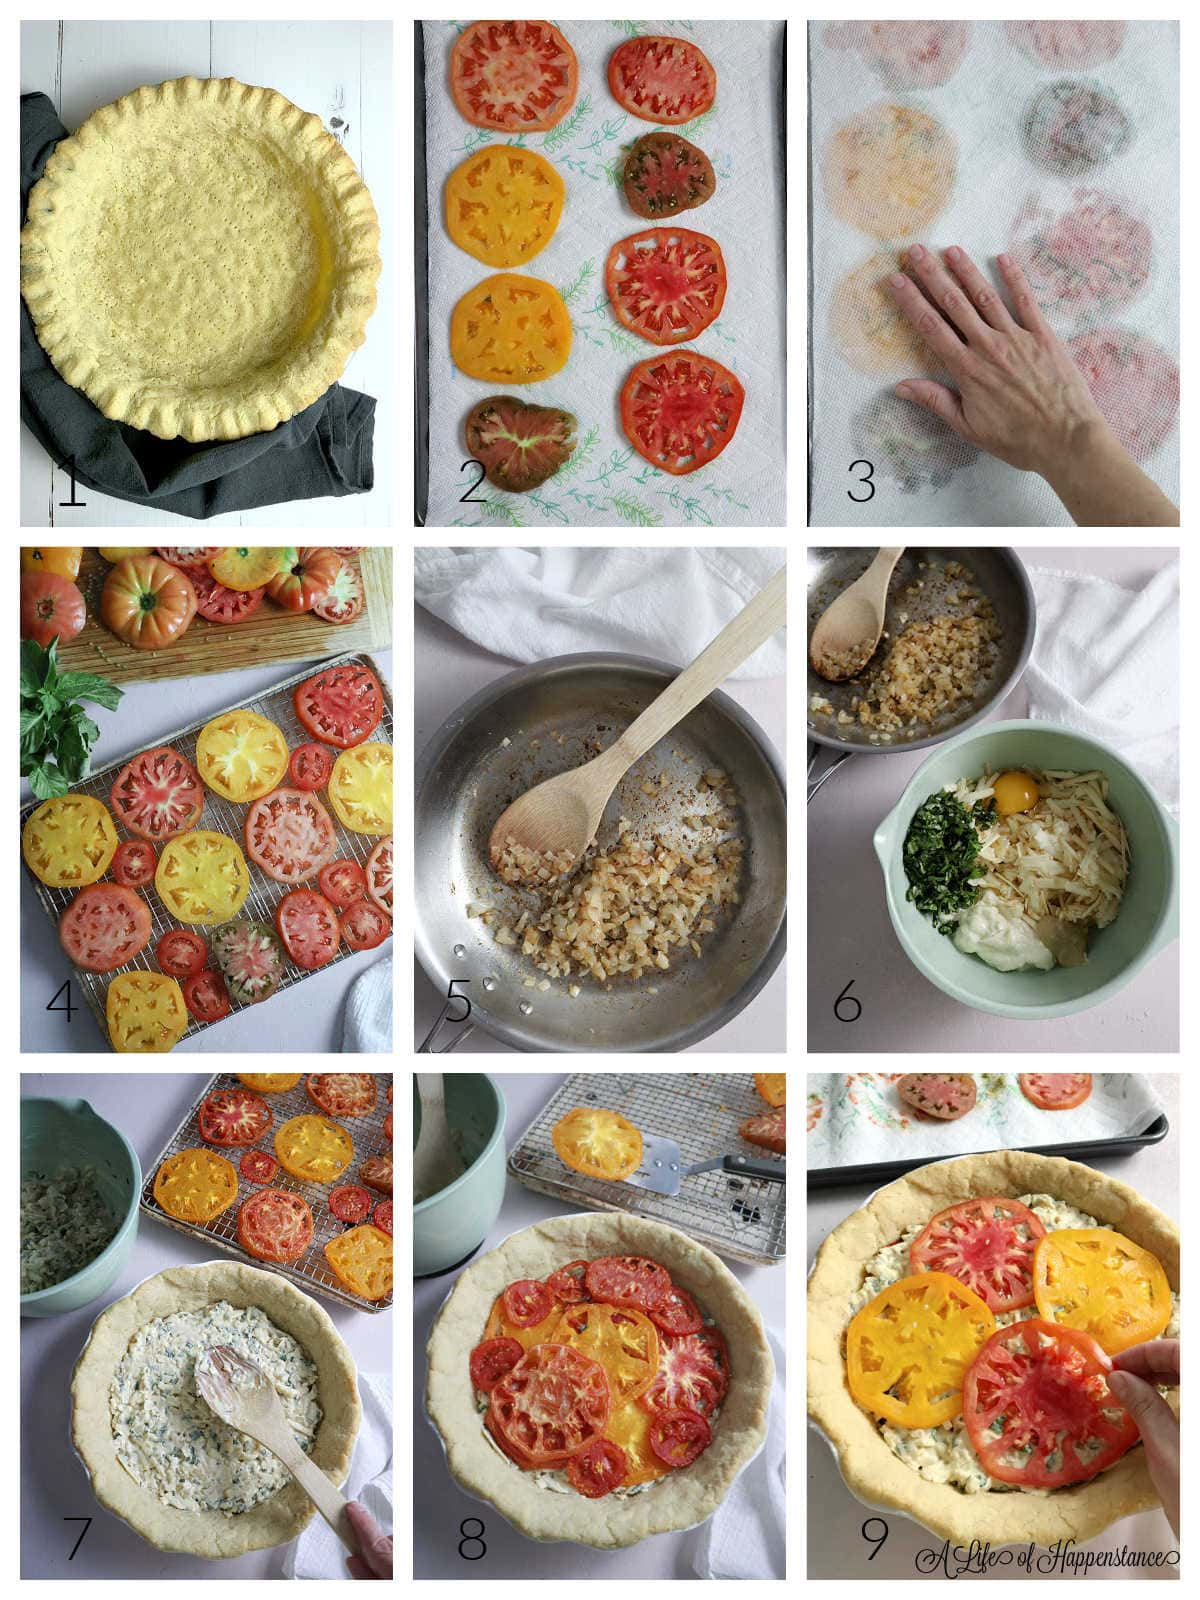 A nine photo collage showing how to make the tomato pie. Photo 1; a prebaked almond flour pie crust cooling on a grey kitchen towel. Photo 2; sliced tomatoes on a paper towel lined baking sheet. Photo 3; pressing additional paper towels on the tomatoes. Photo 4; sliced tomatoes arranged in a single layer on a wire rack. Photo 5; cooked onions and garlic in a skillet. Photo 6; the filling ingredients in a mint green bowl. Photo 7; using a wooden spoon to spread half of the filling mixture in the pie crust. Photo 8; roasted tomatoes arranged on top of the filling. Photo 9; placing fresh tomatoes on top of the second layer of filling.